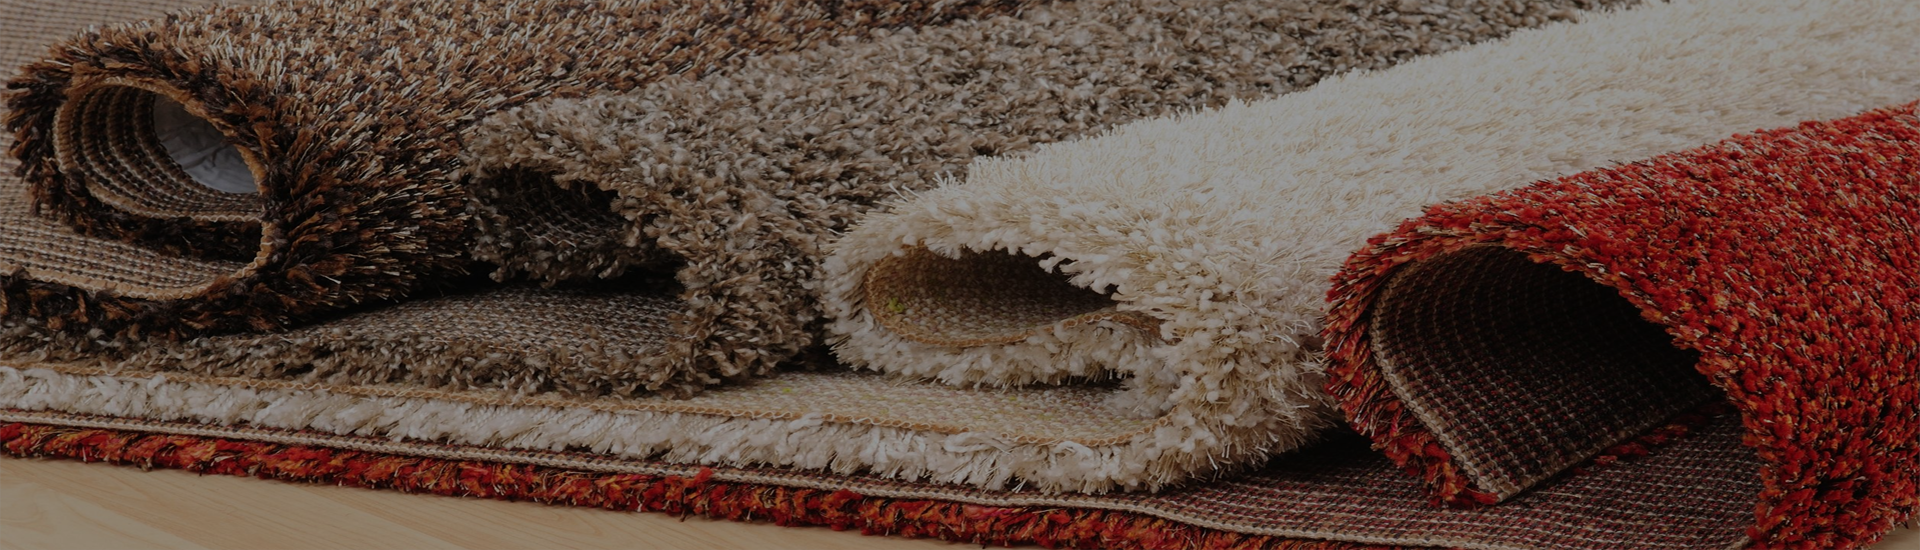 carpets wilmslow